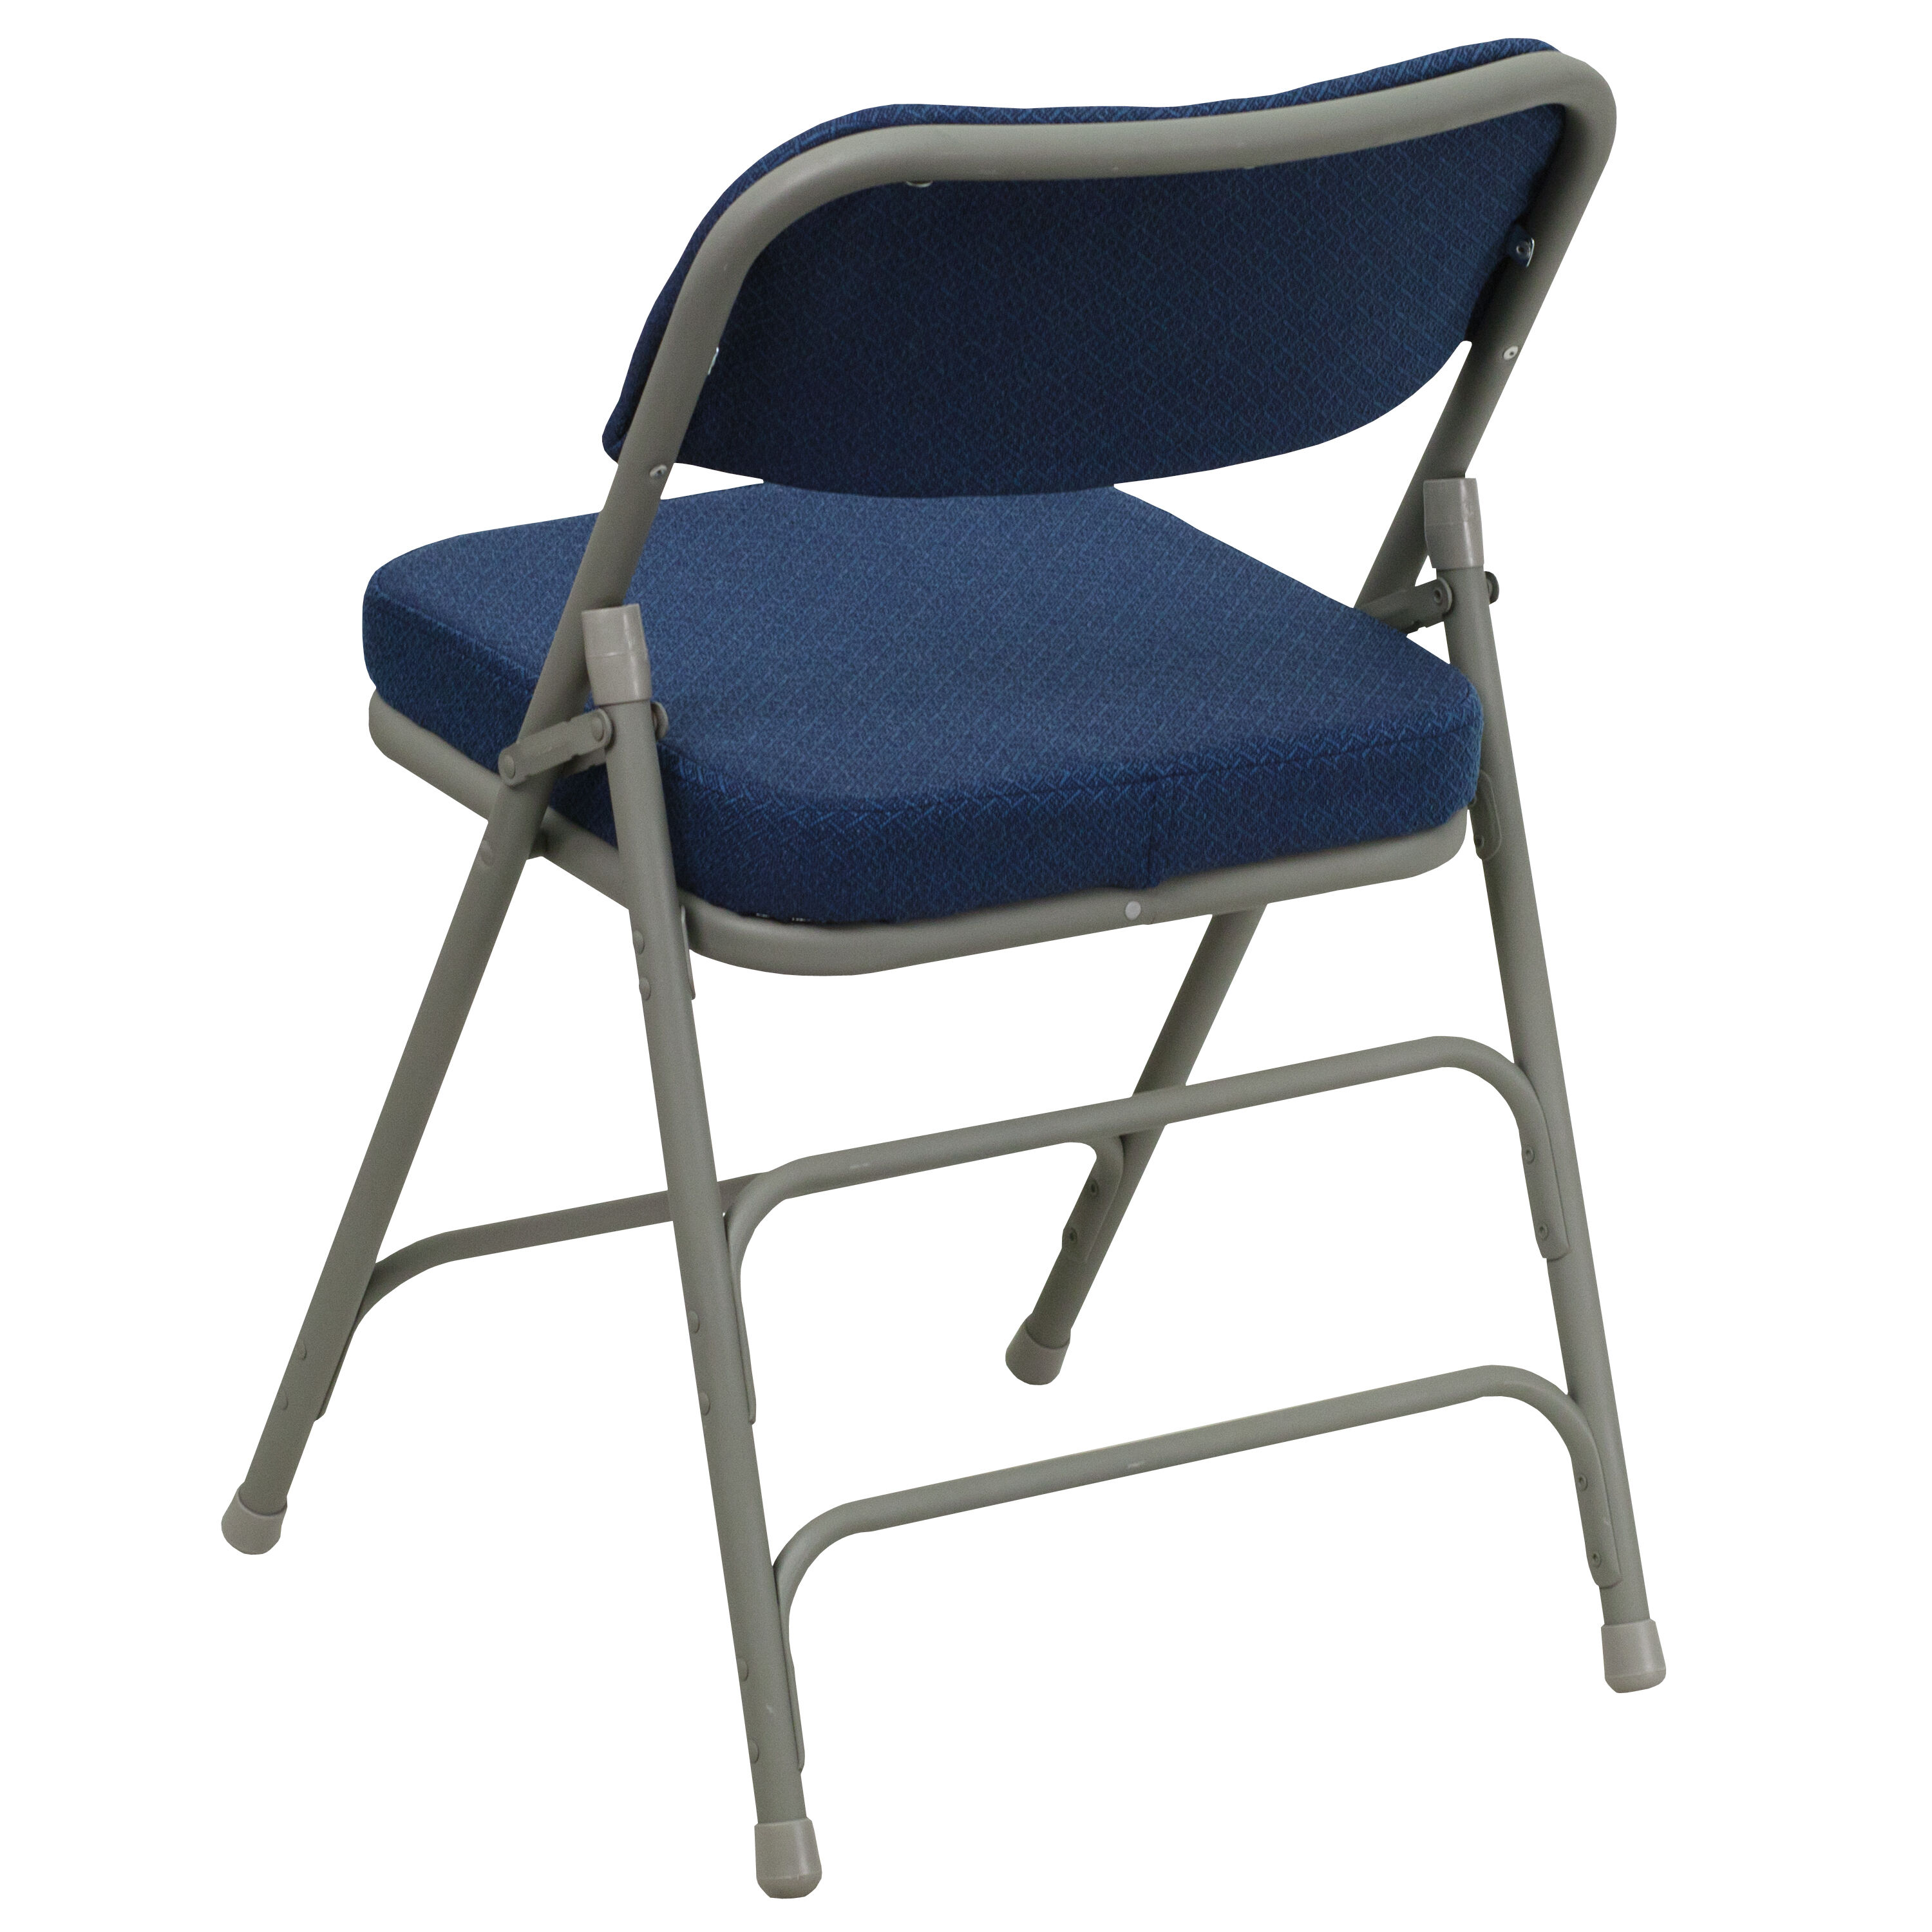 folding chair fabric perfect posture jellyfish navy ha mc320af nvy gg